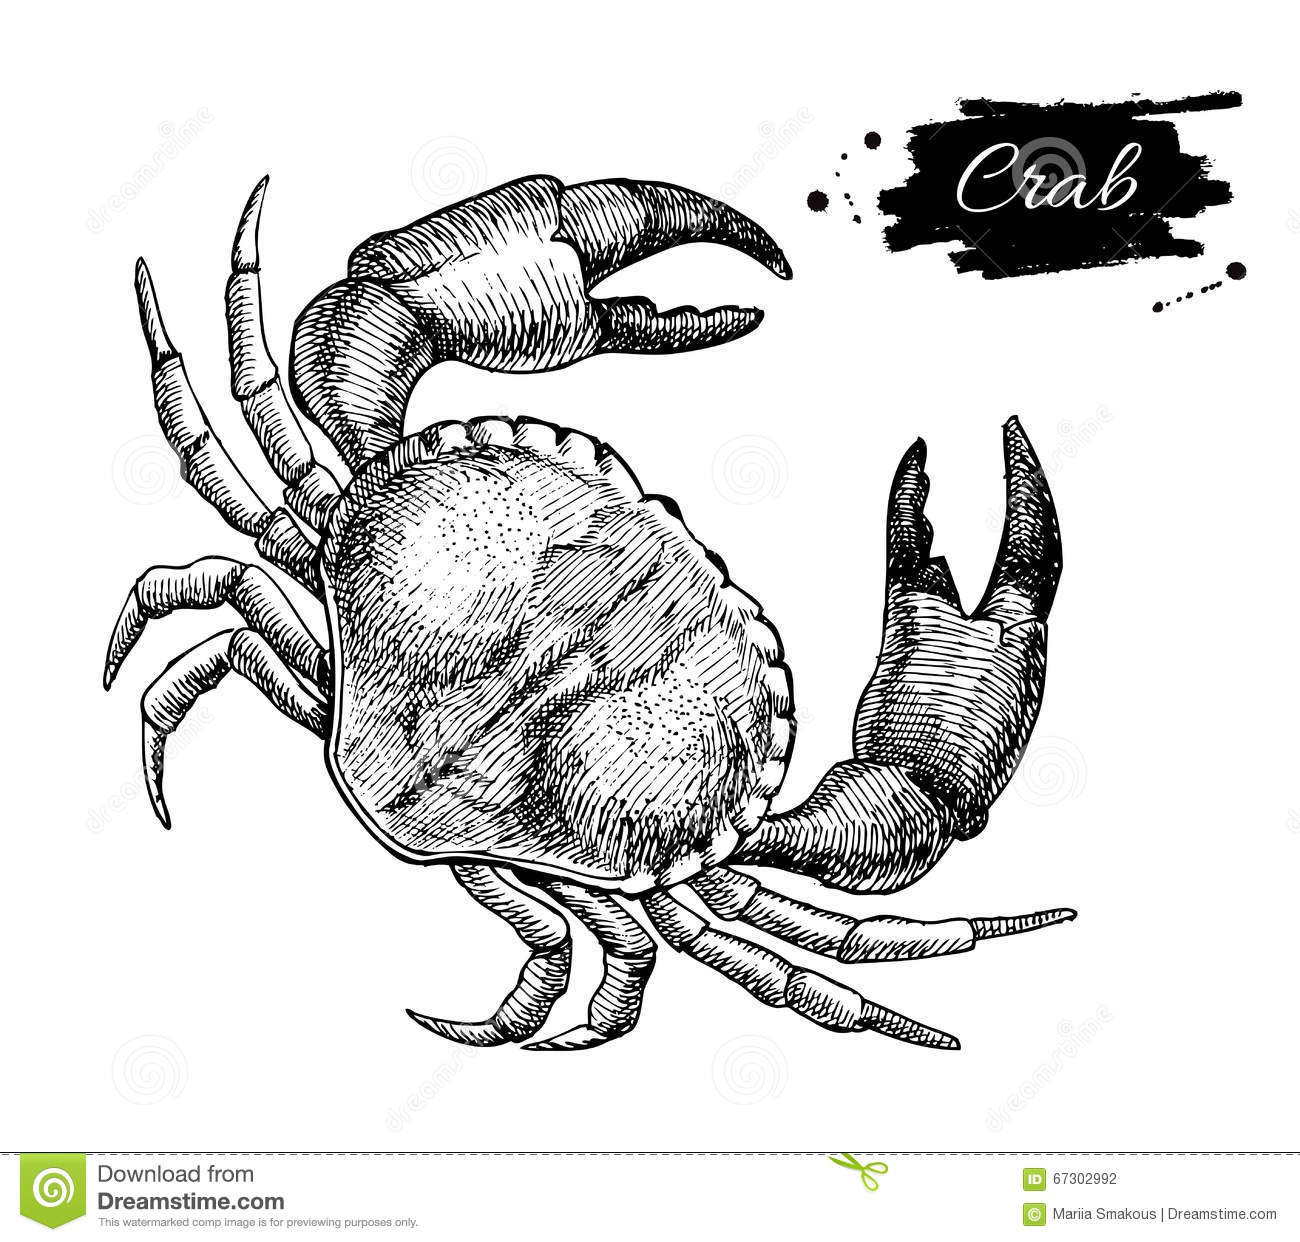 Ausmalbilder Ber Wale furthermore Facts Discovery additionally Temple Of Heaven In Beijing in addition 6478 furthermore Stock Illustration Vector Vintage Crab Drawing Hand Drawn Monochrome Seafood Illus Illustration Great Menu Poster Label Image67302992. on sea animal outline